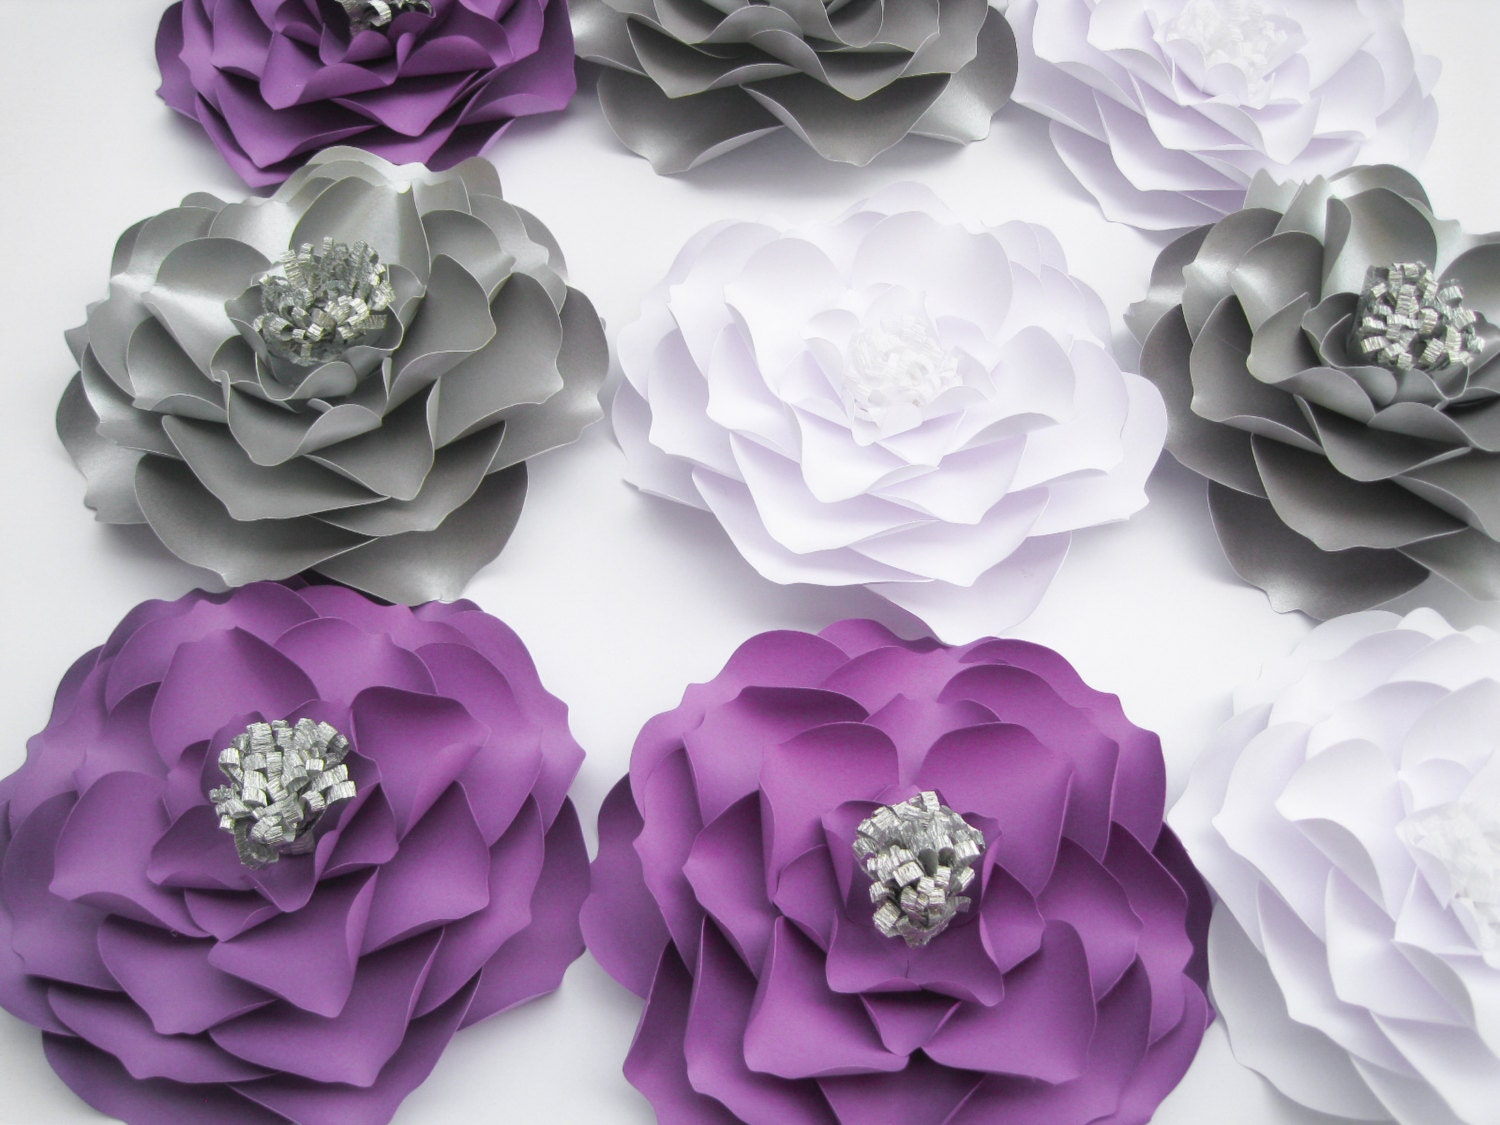 9 paper flowers white purple and silver flowers wedding zoom amipublicfo Image collections